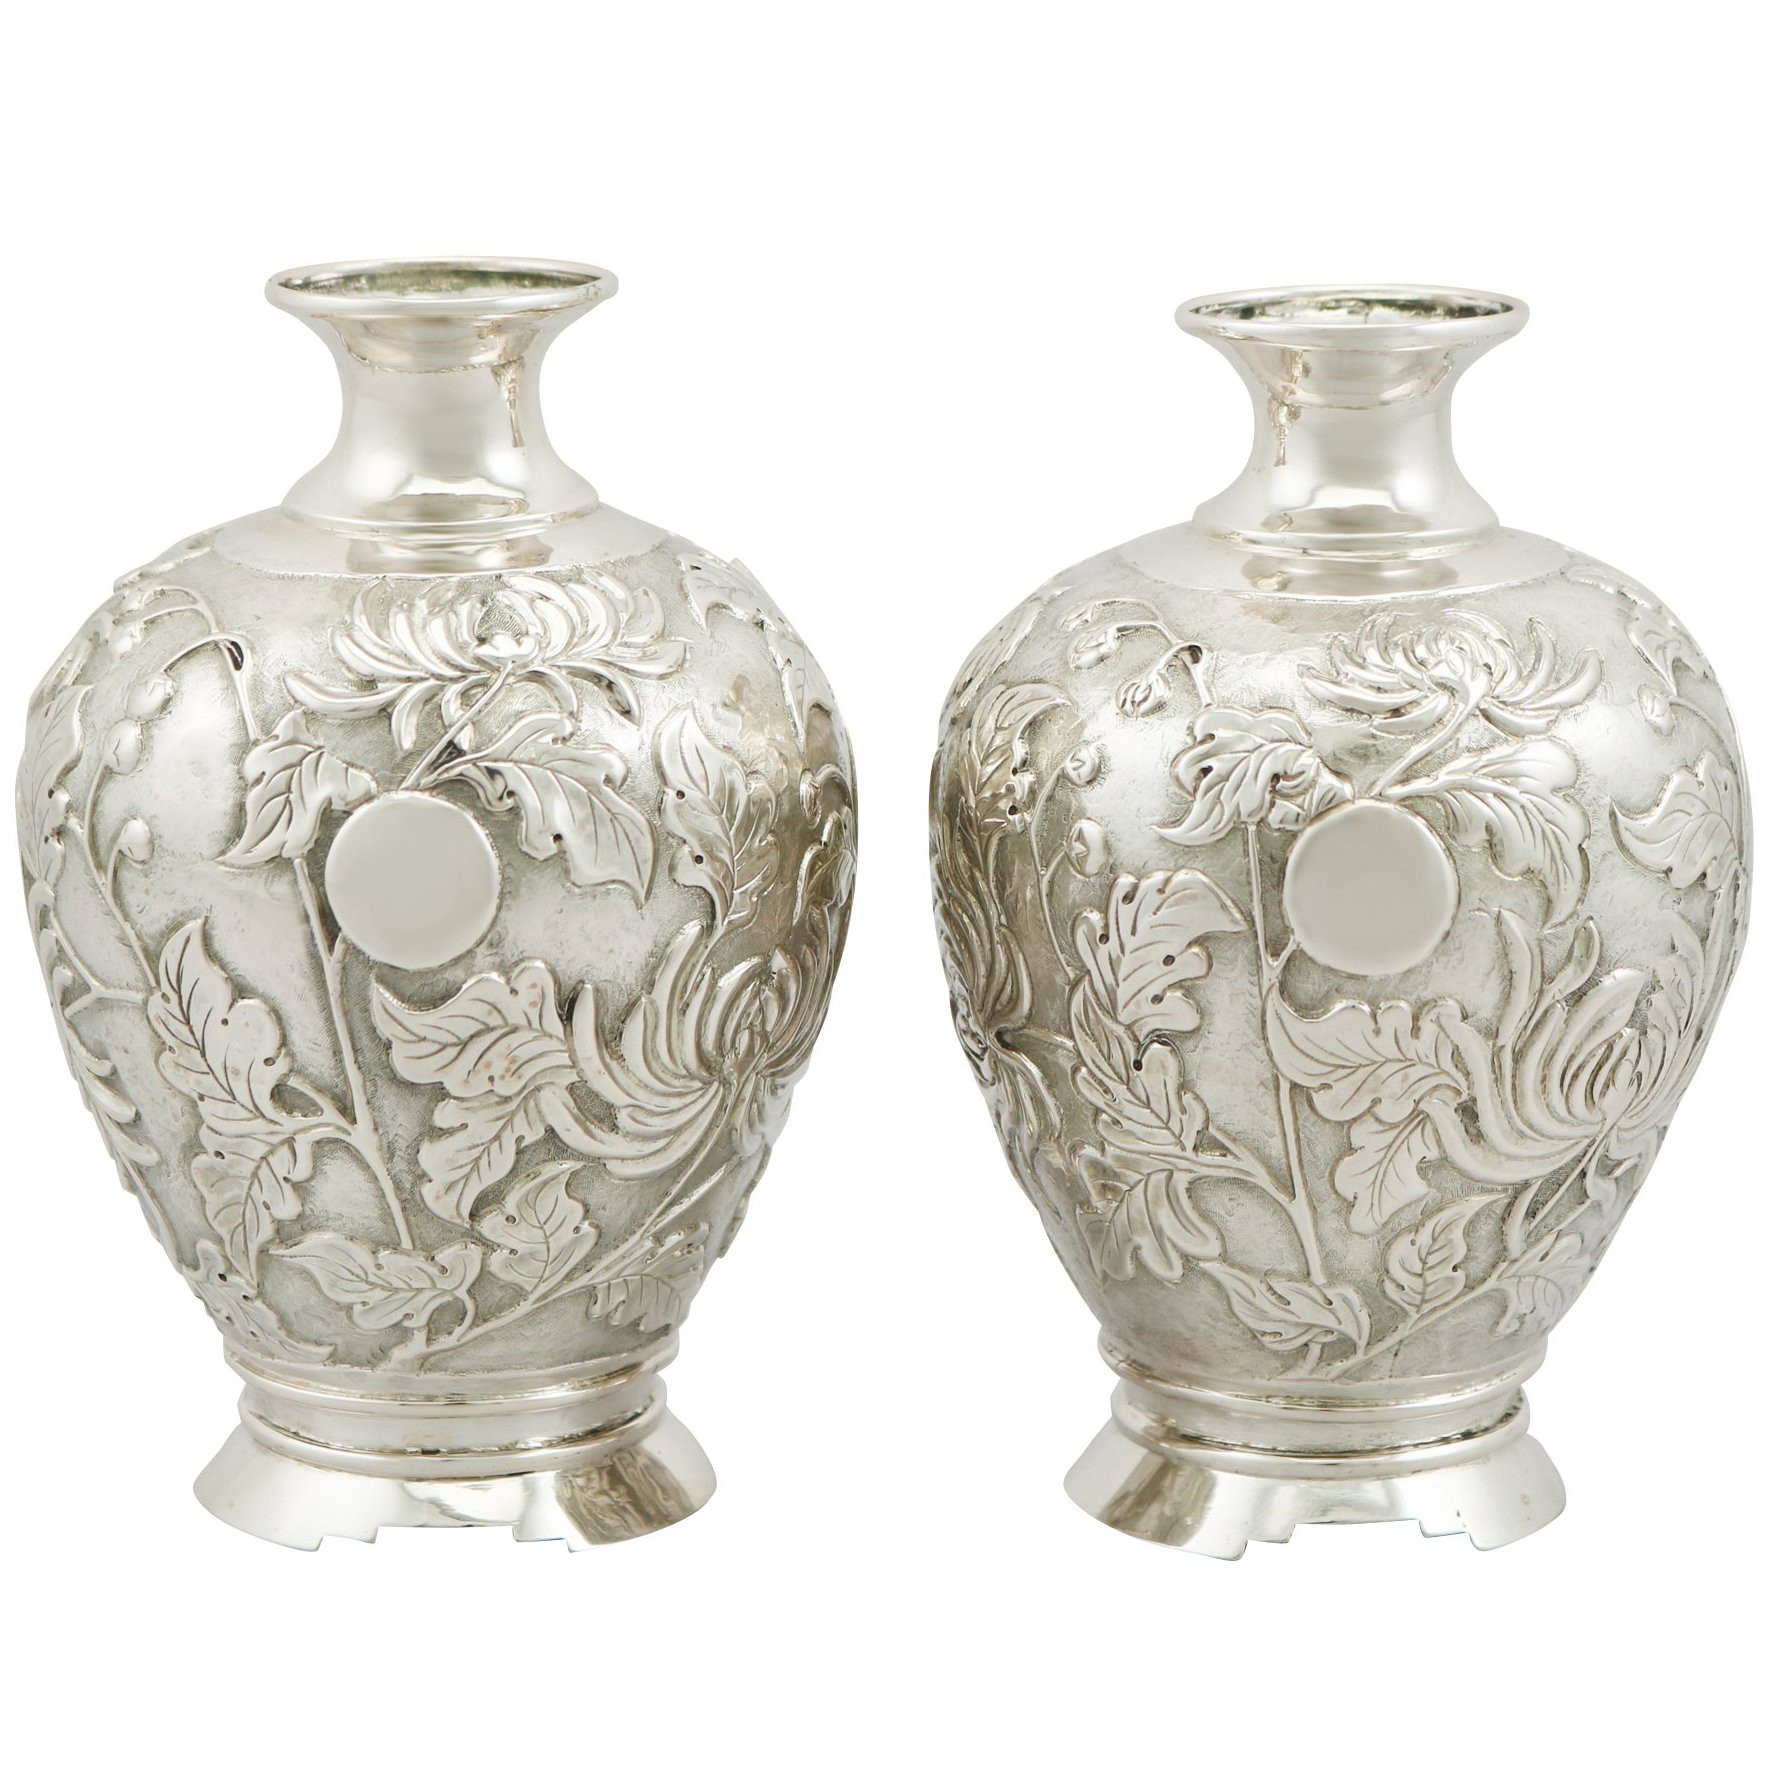 Daum Nancy Vase for Sale Of Achaemenid Revival Repoussa Silver Vase Persia Circa 1900 for Sale In Achaemenid Revival Repoussa Silver Vase Persia Circa 1900 for Sale at 1stdibs